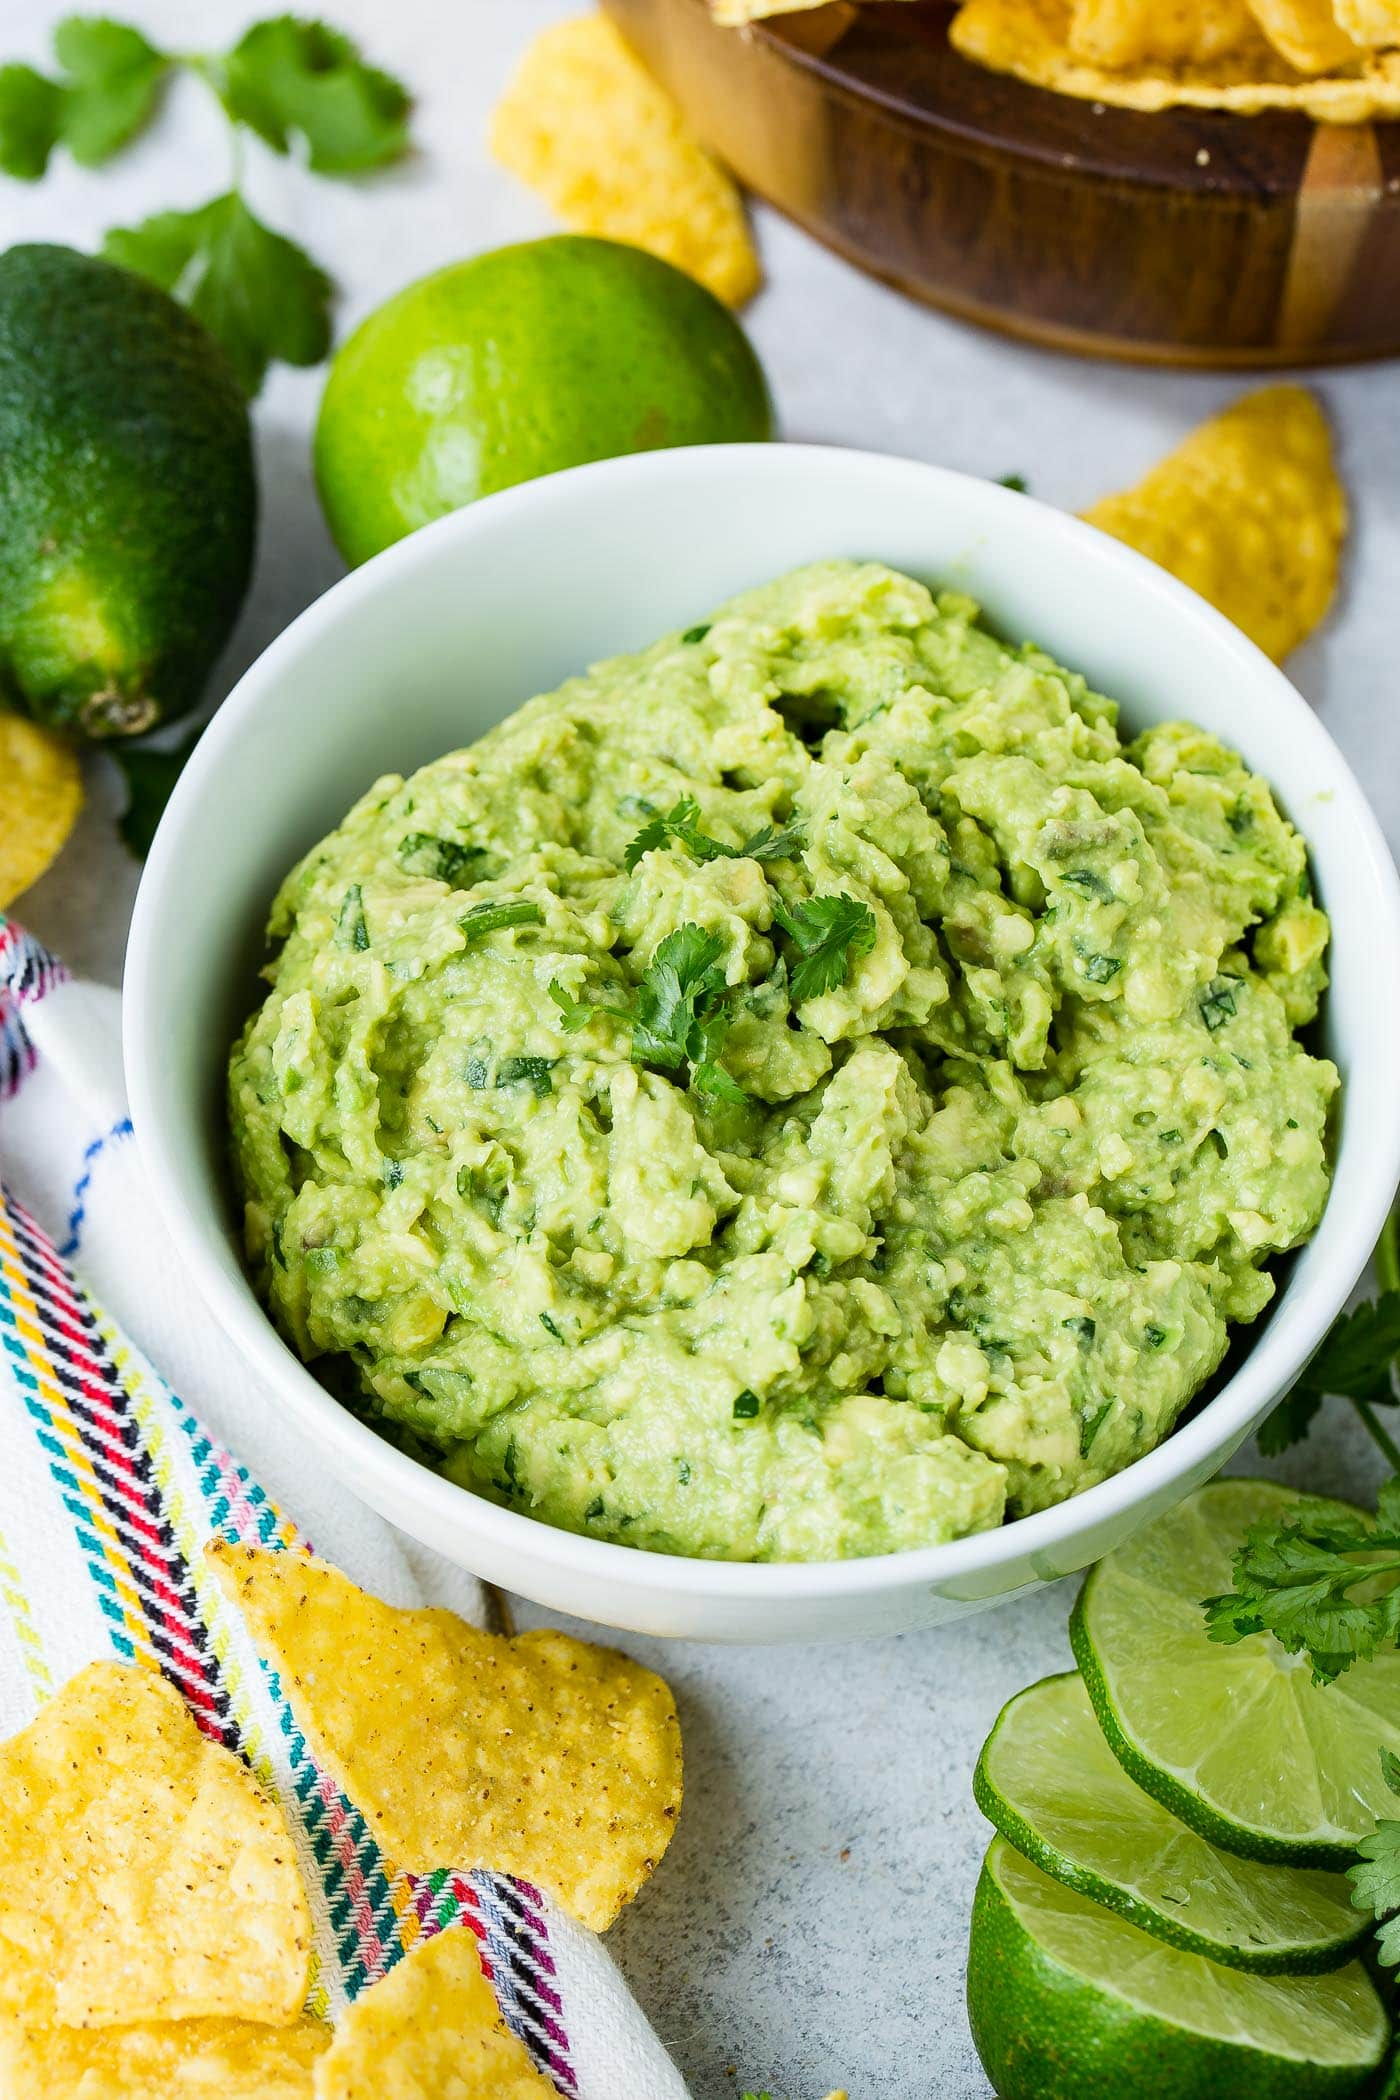 A bowl of homemade authentic guacamole with a few cilantro leaves on top. there are two whole limes and tortilla chips in the background and three slices of lime and more chips in front of the bowl.